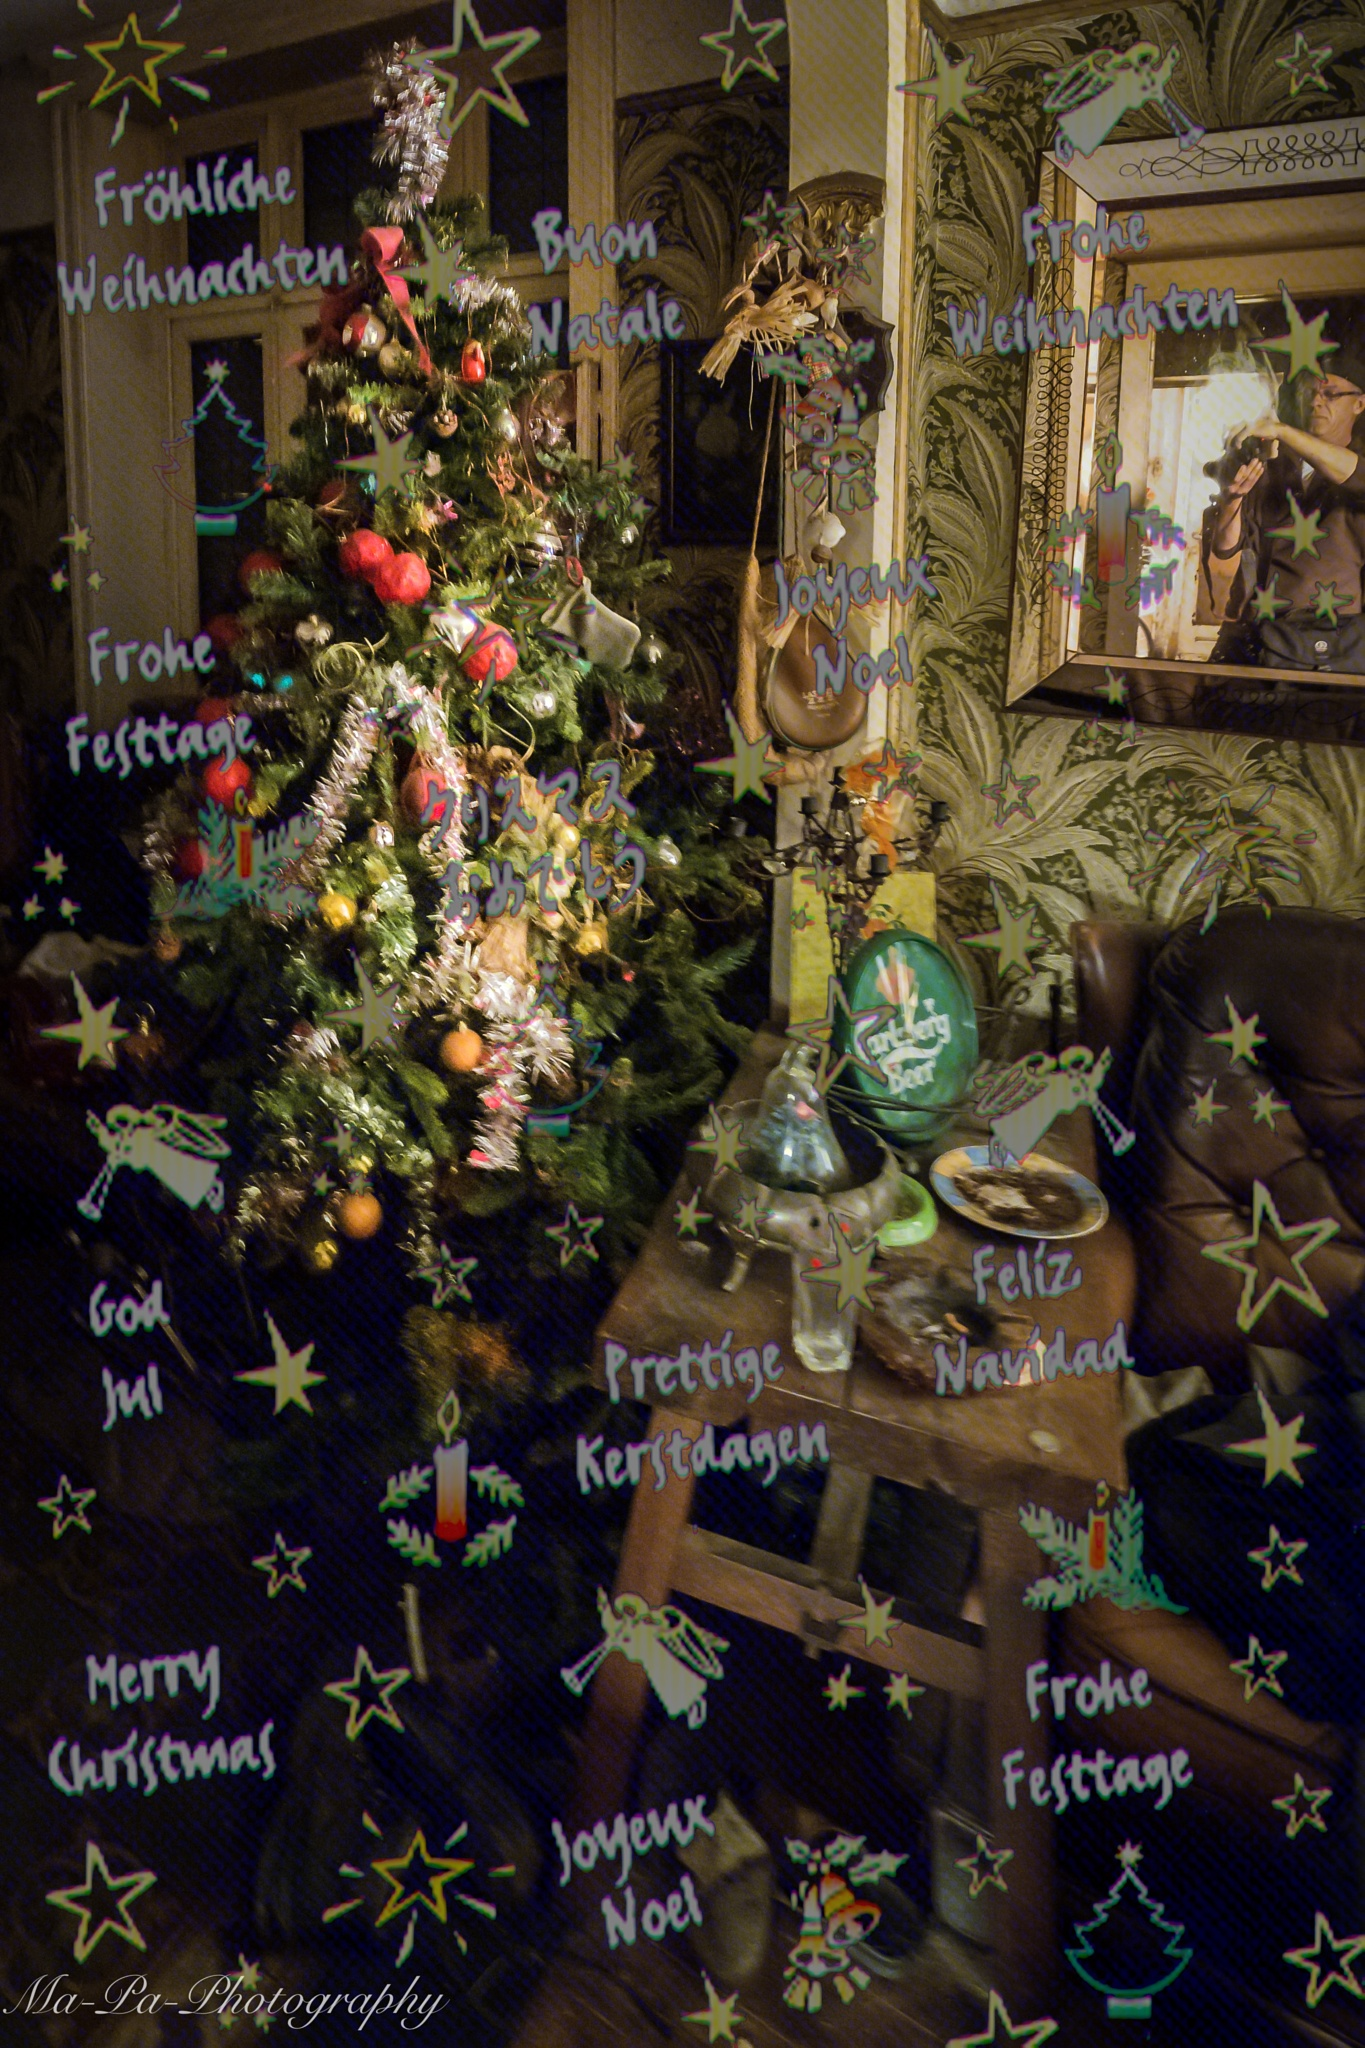 Frohes Fest by manfred.pack